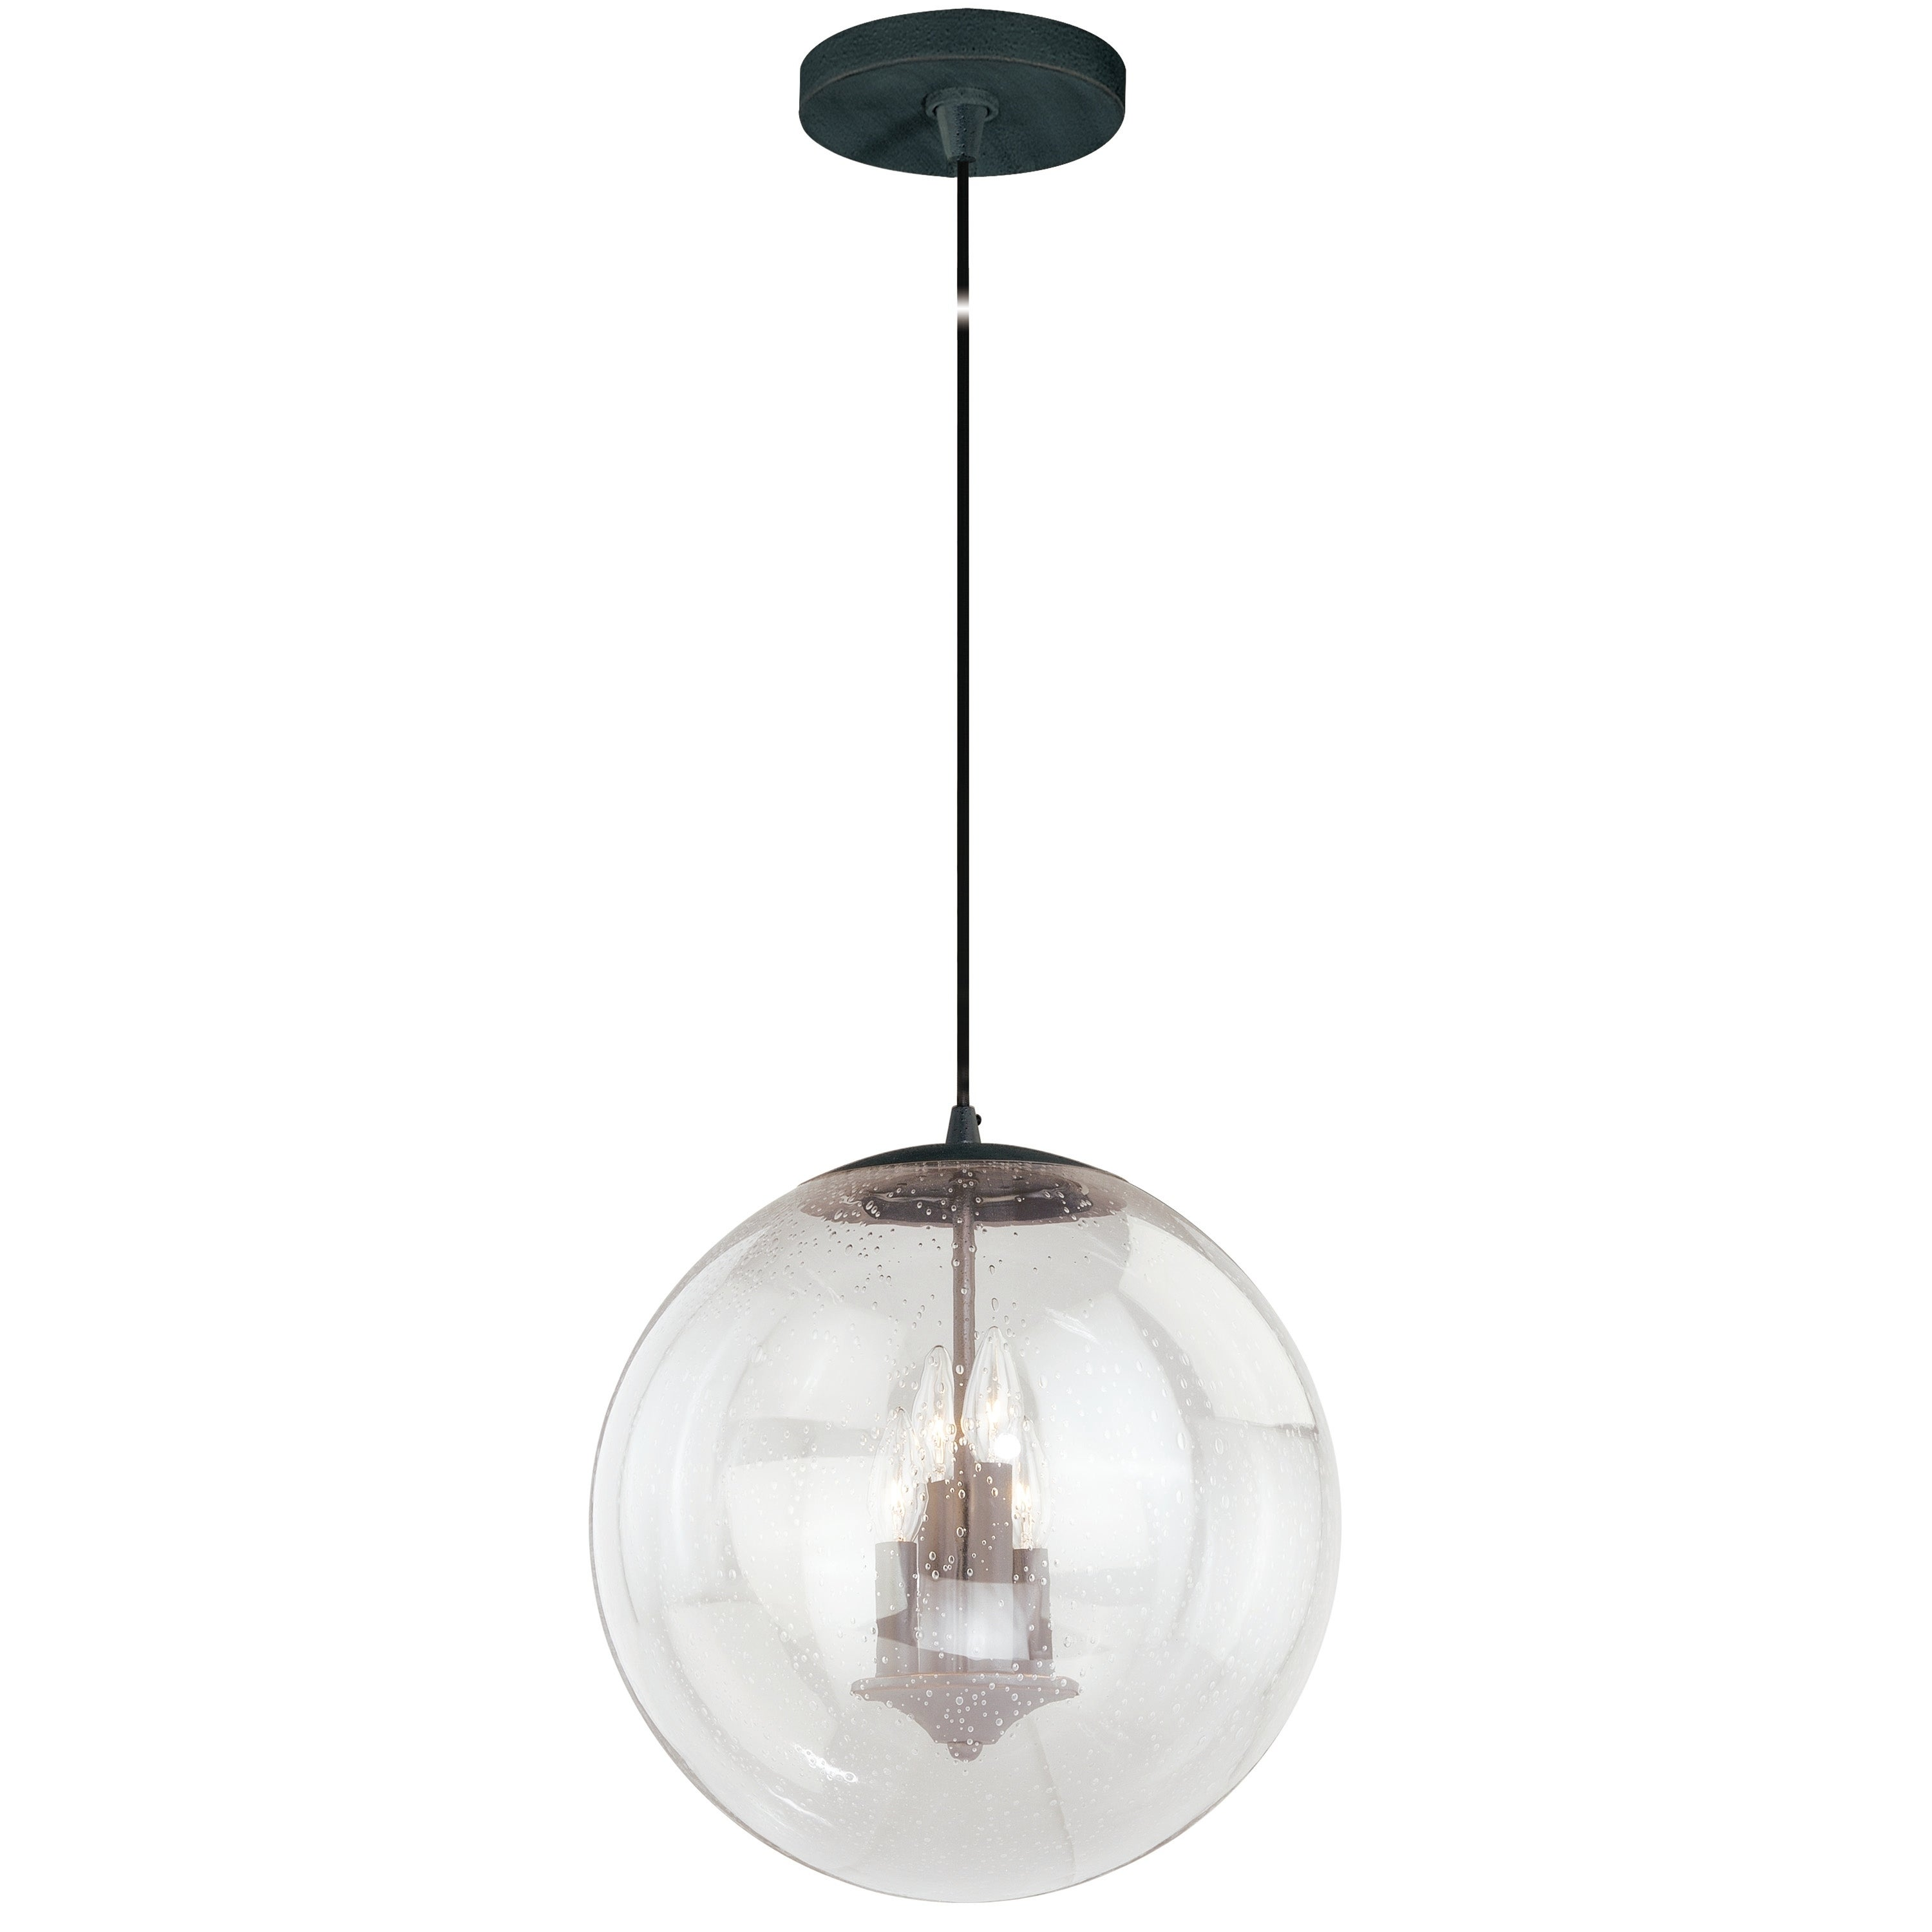 Shop Black Friday Deals On 4 Light Black Mid Century Modern Globe Pendant Clear Glass 15 75 In W X 16 75 In H X 15 75 In D Overstock 20907337